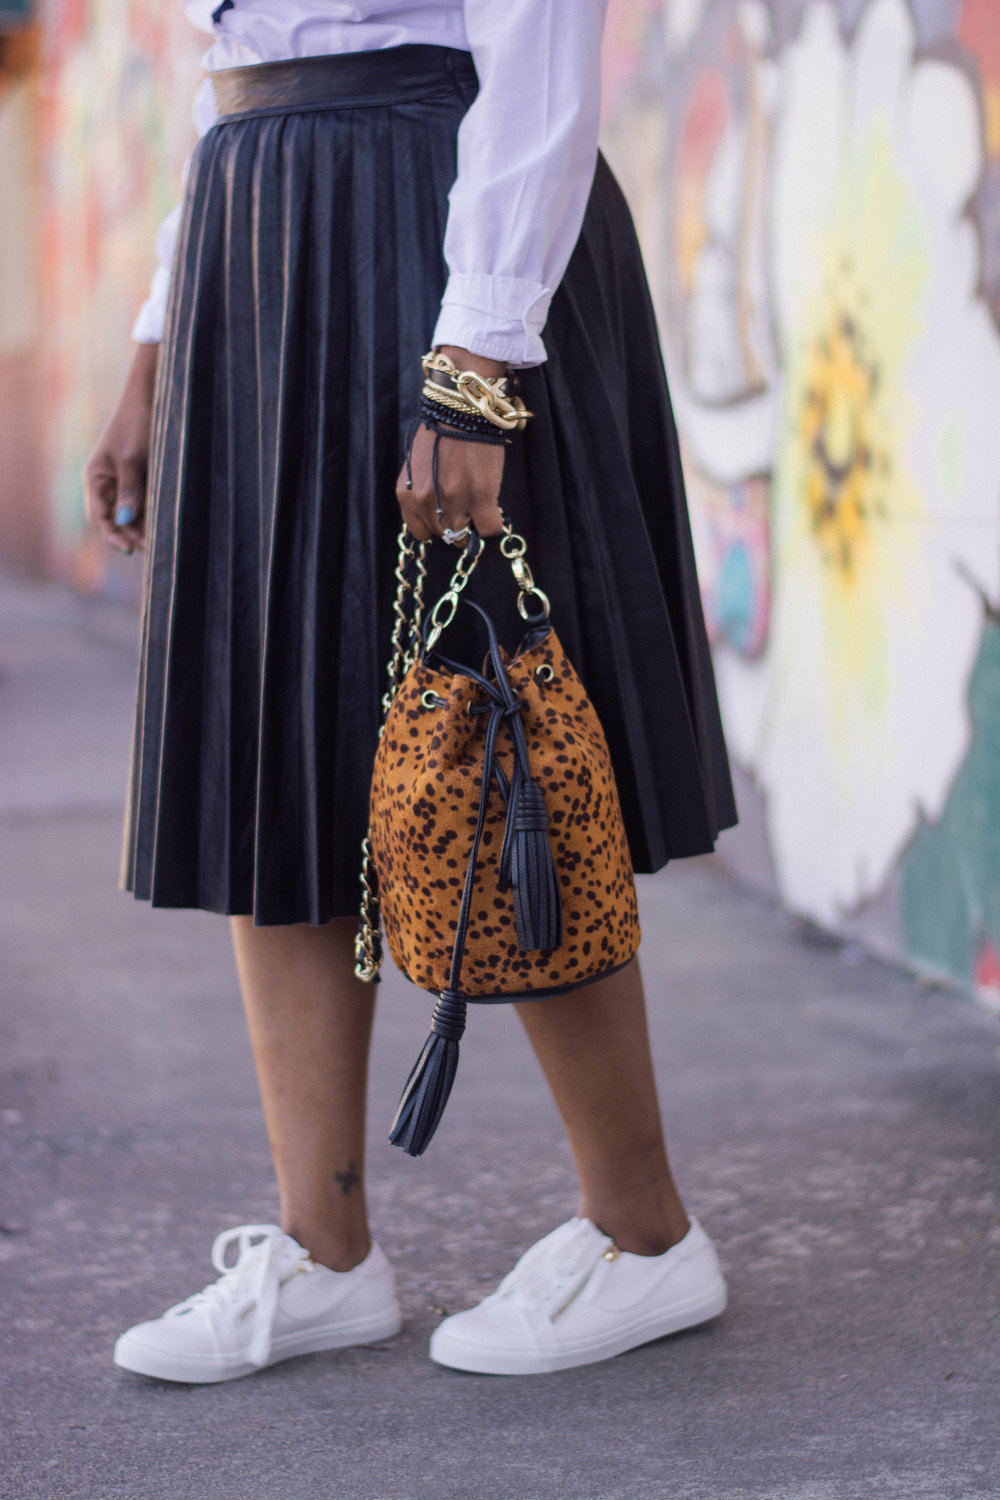 Melodie Stewart, The Style Klazit, Atlanta style blogger, White sneakers, ShoeDazzle, Faux leather pleated skirt